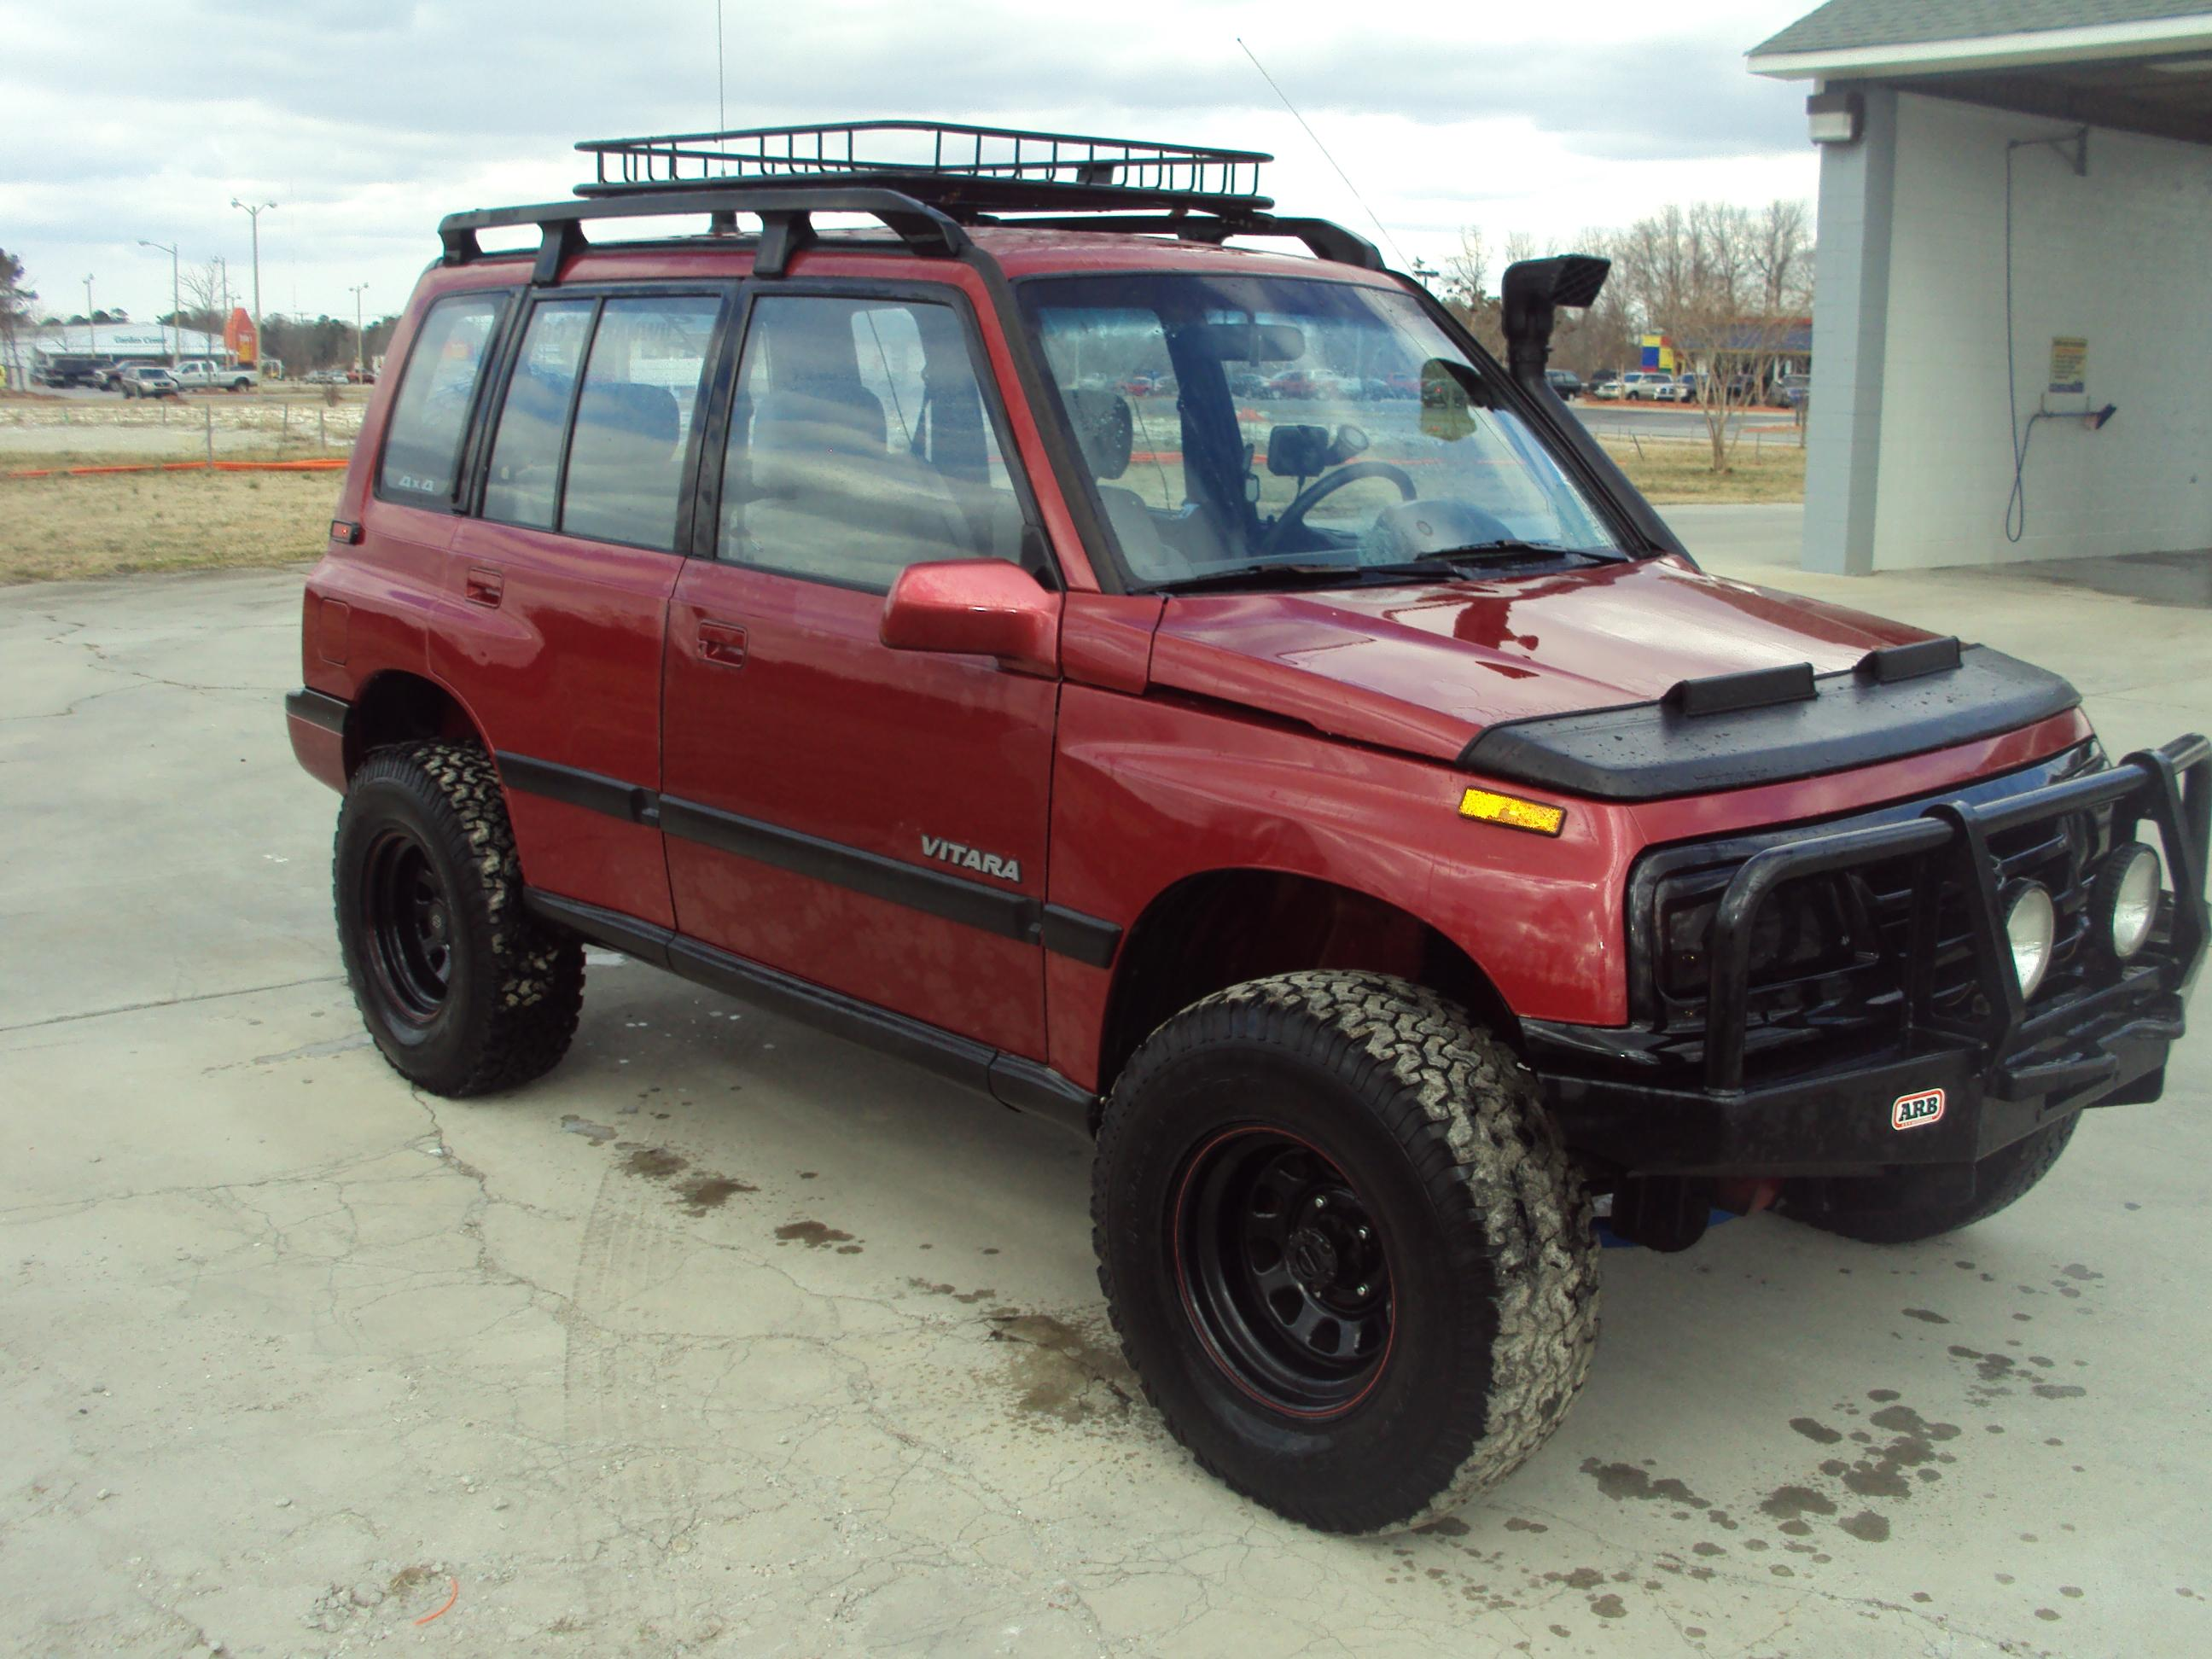 TOnKaTrAcKeR 1991 Suzuki Vitara Specs, Photos